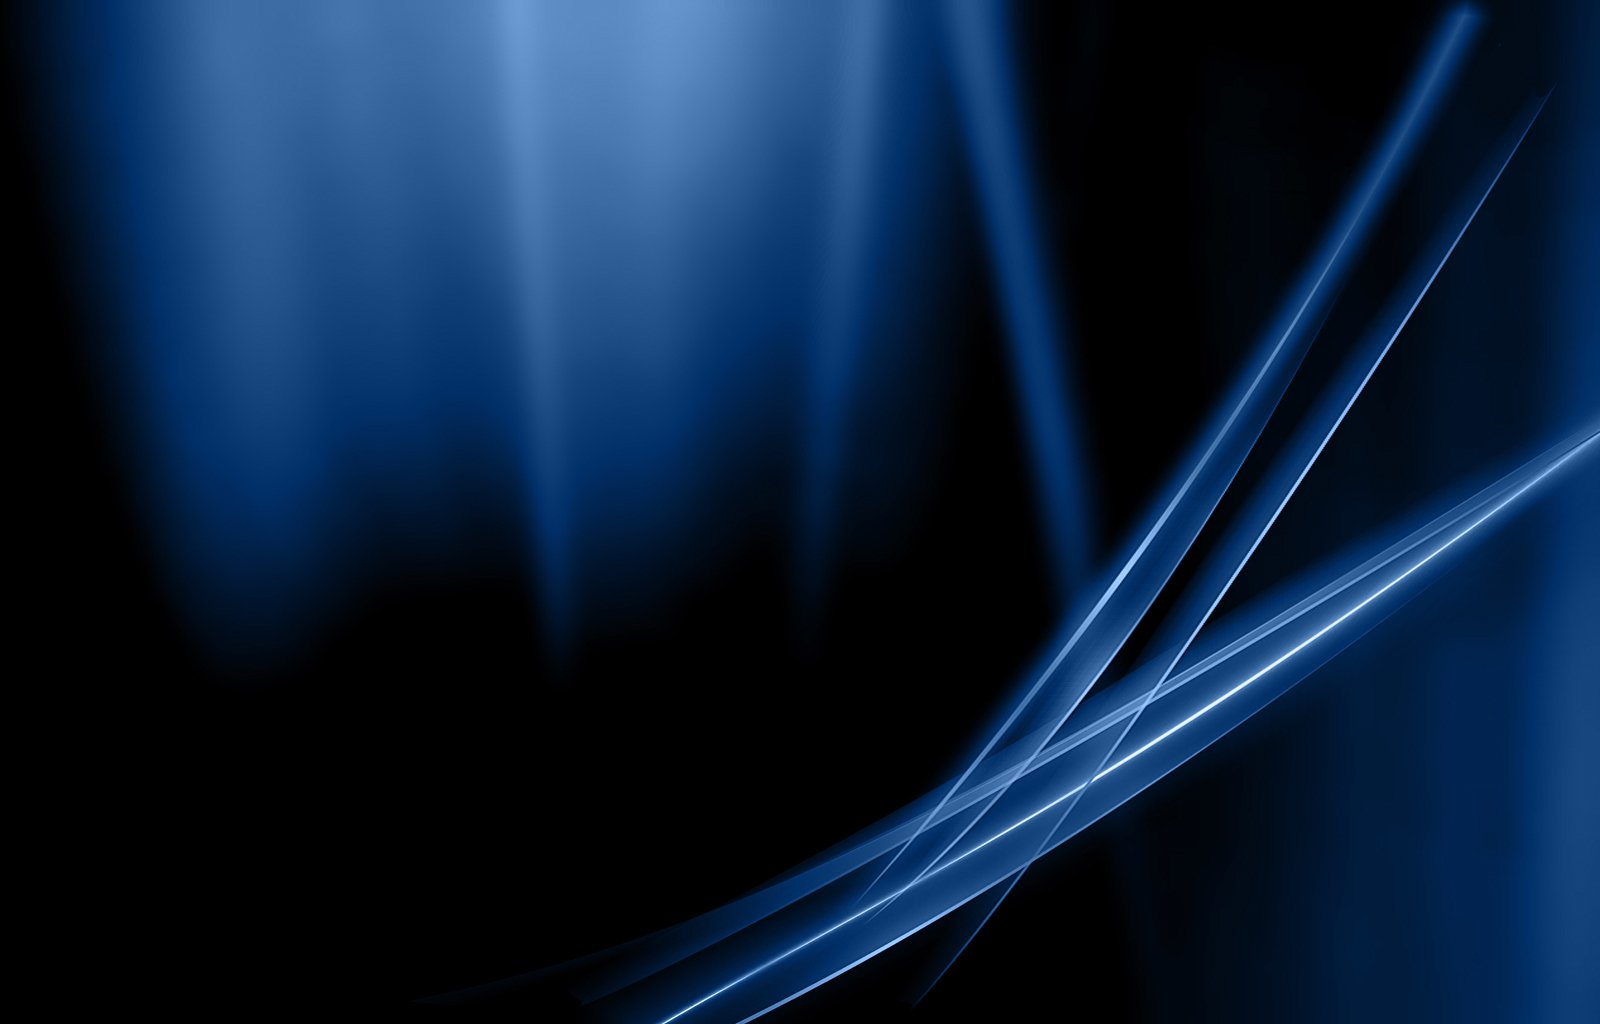 Blue Abstract Full HD Wallpaper Gallery Yopriceville High